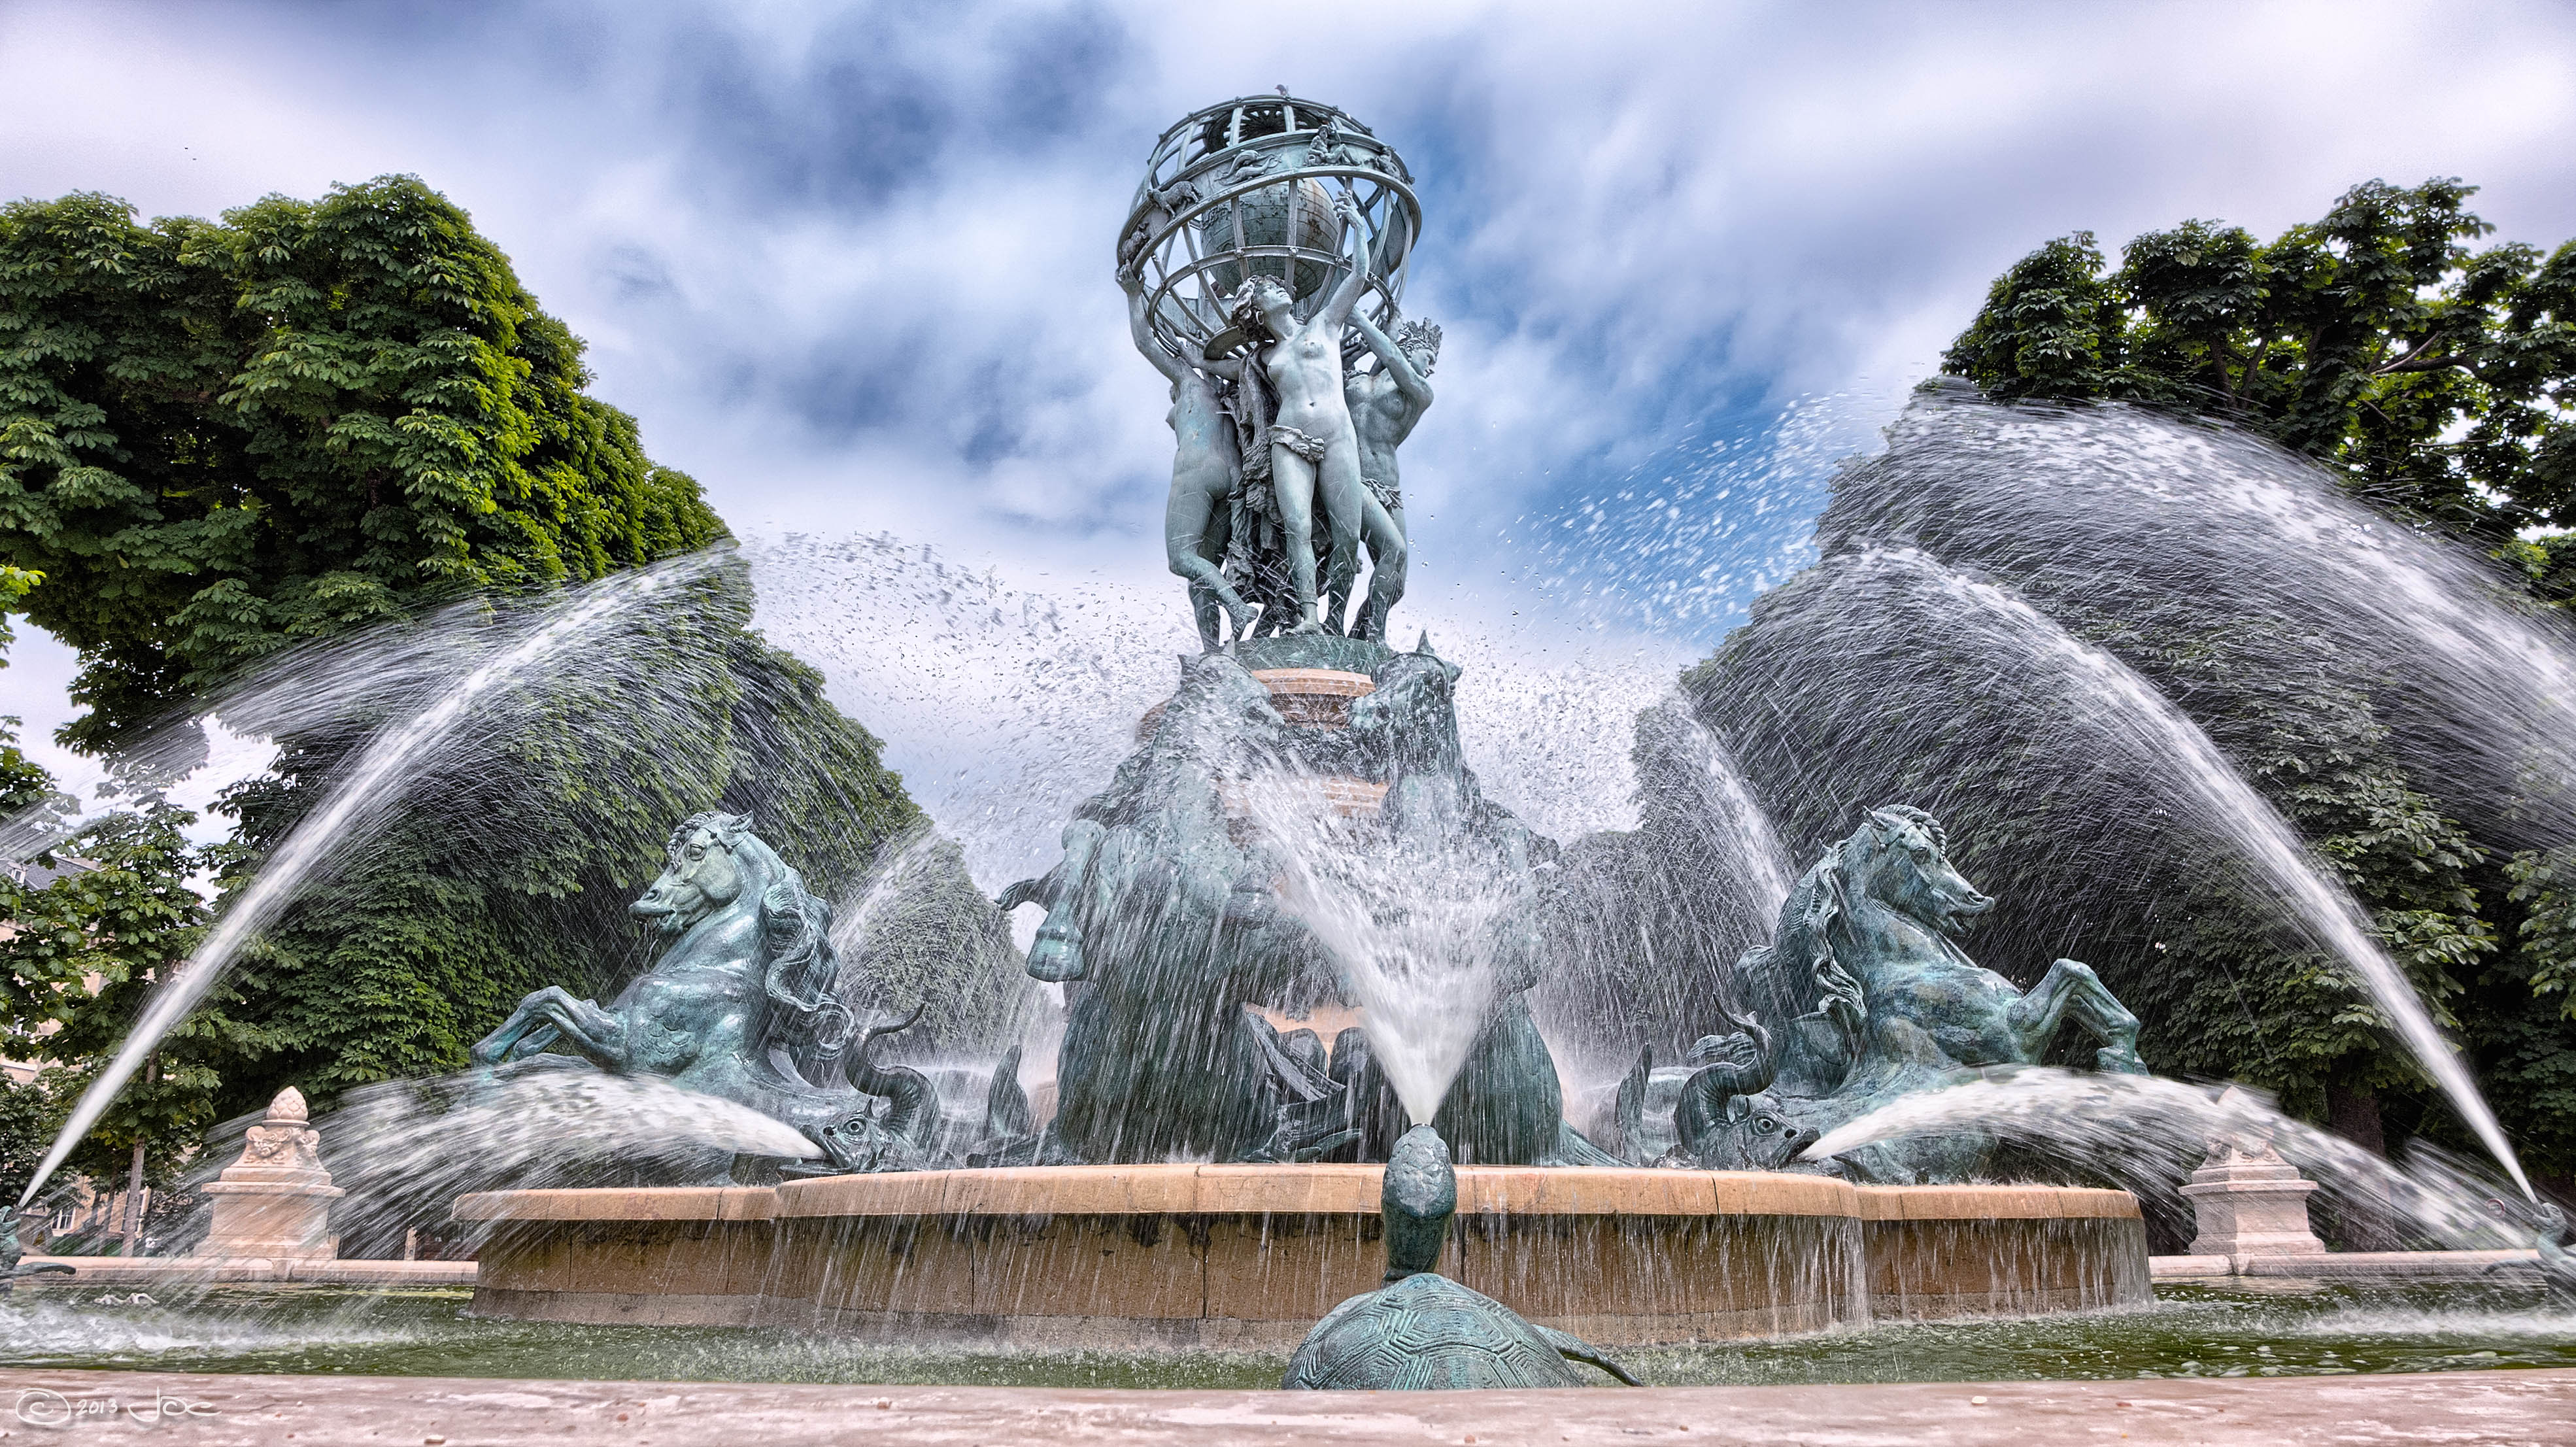 The most impressive Parisian fountains